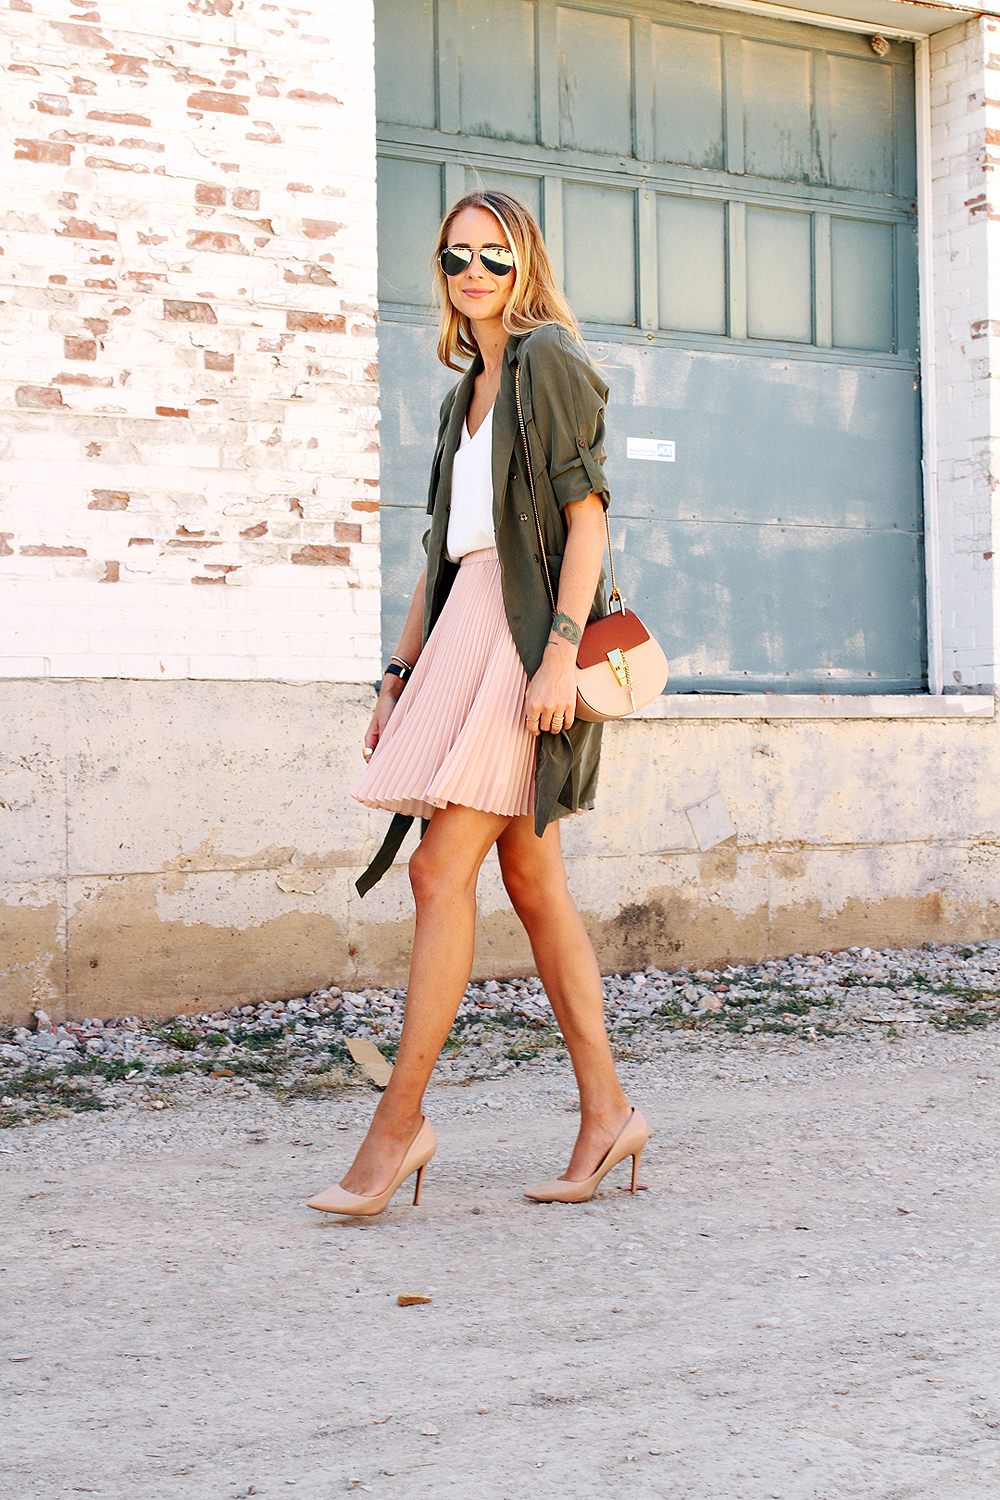 fashion-jackson-banana-republic-blush-pleated-skirt-banana-republic-trench-dress-chloe-drew-handbag-nude-pumps-rayban-silver-aviator-sunglasses